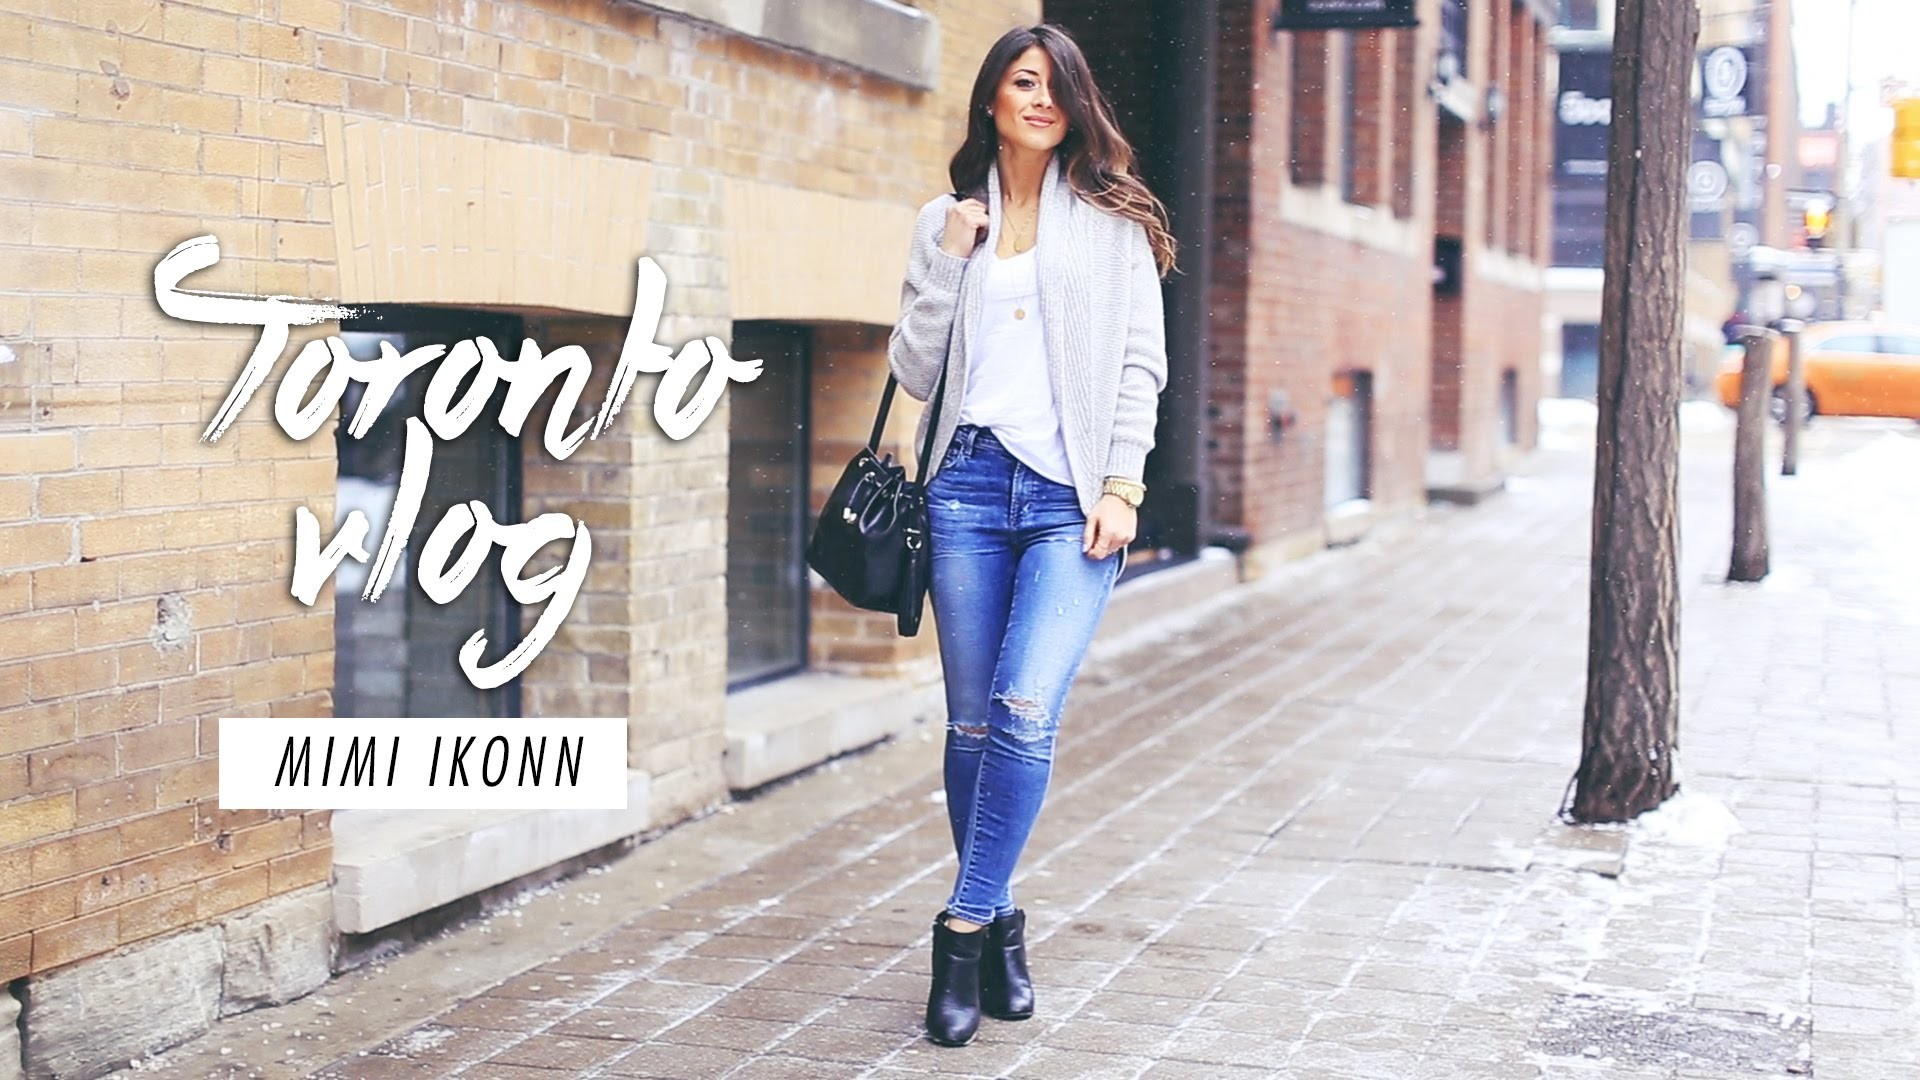 Winter Outfits + Thoughts on Life | Mimi Ikonn Vlog